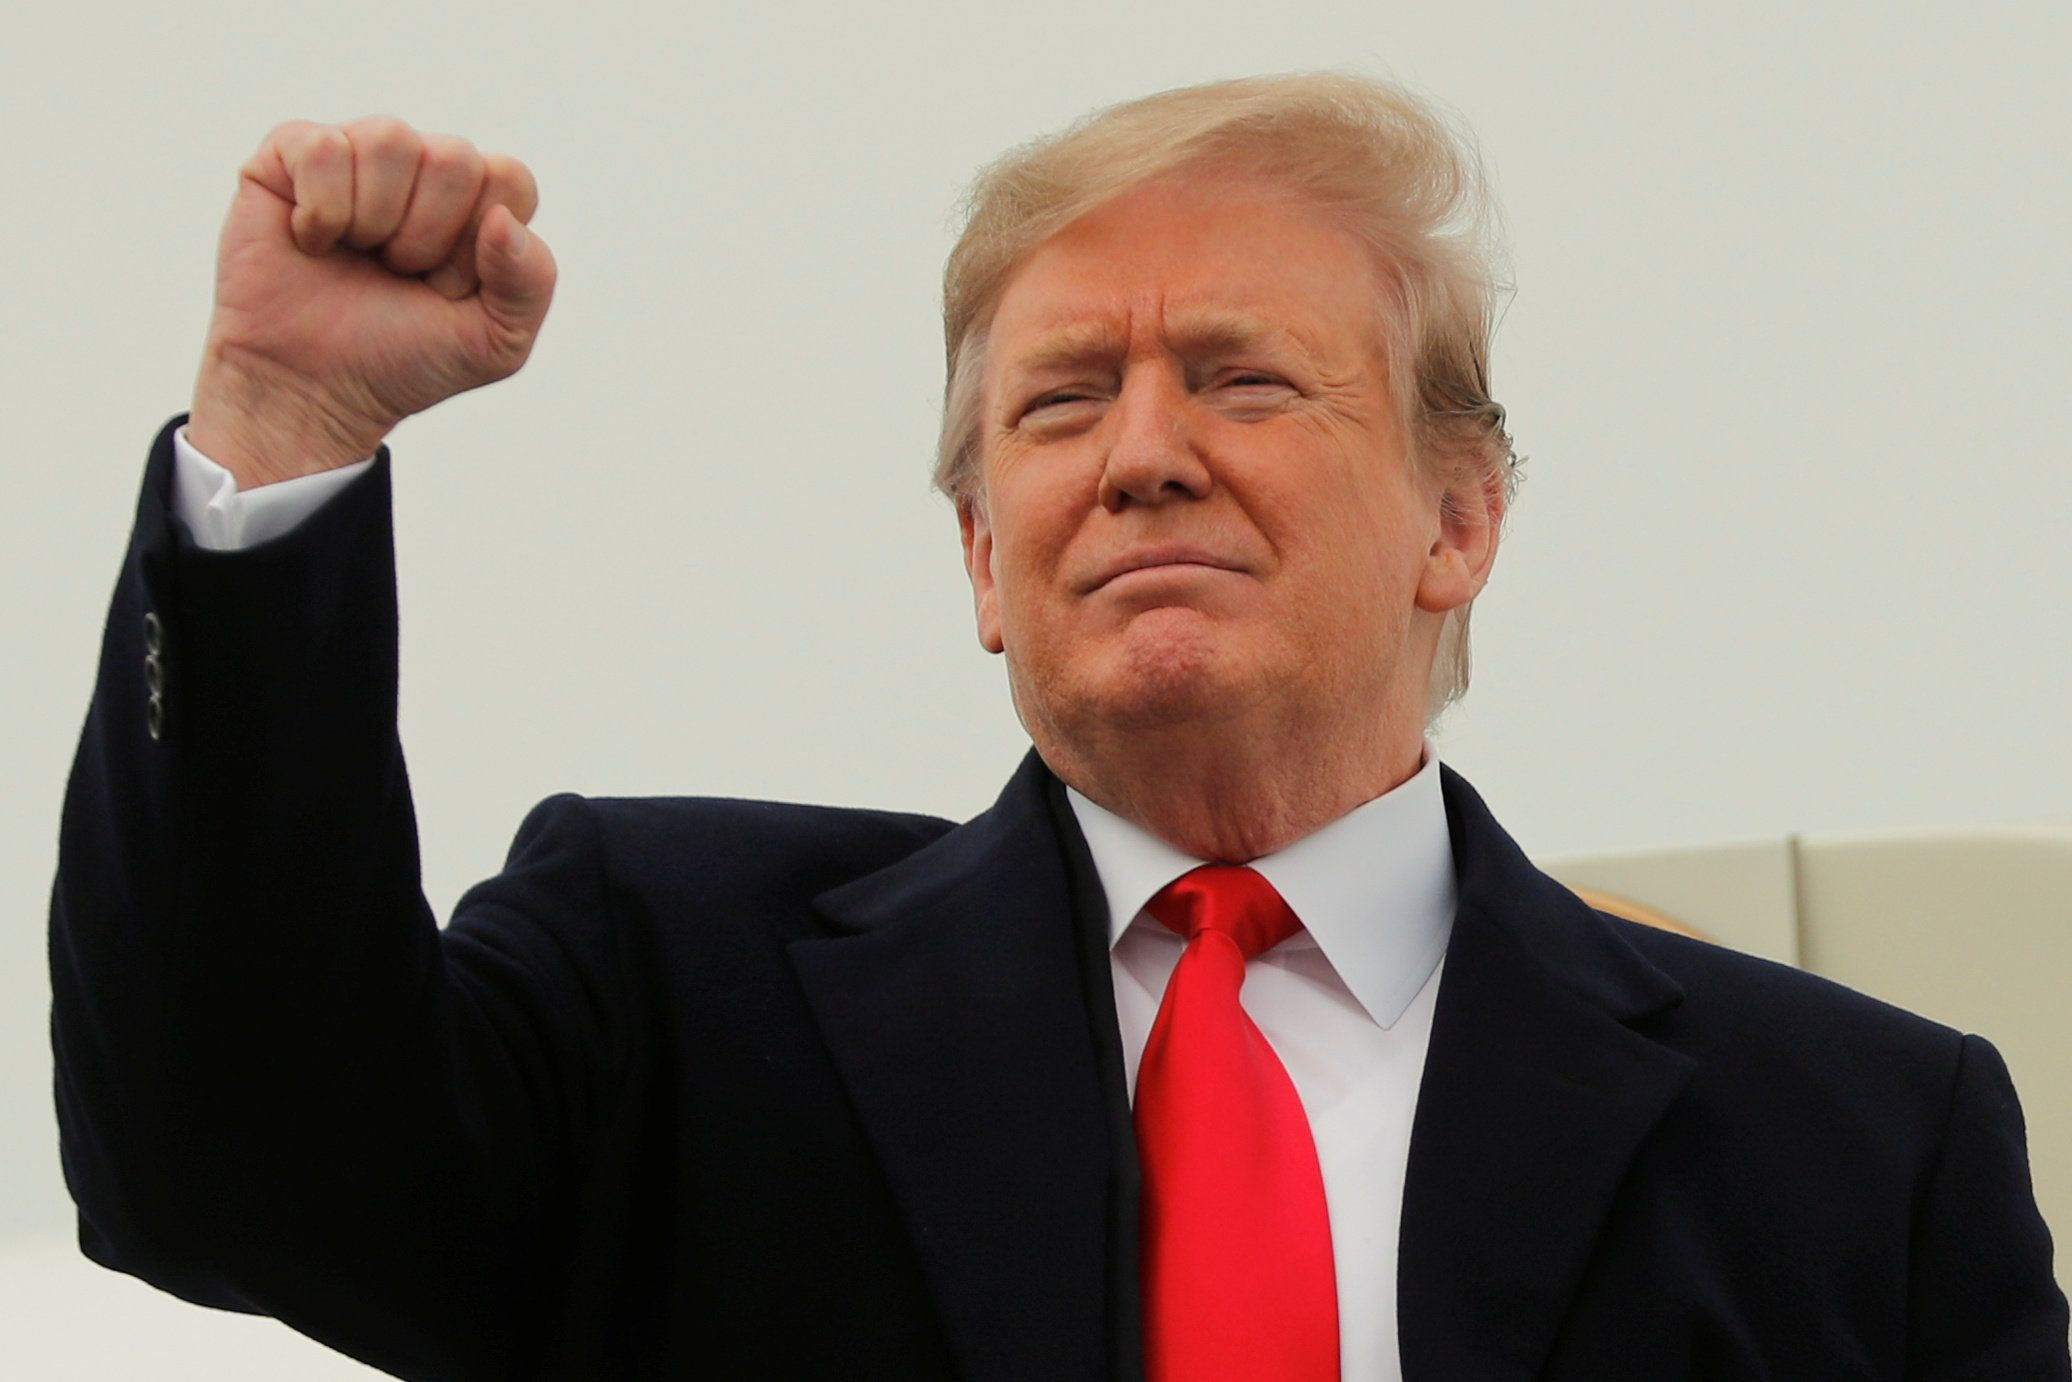 Trump Is Now Greeting People With 'No Collusion' Instead Of